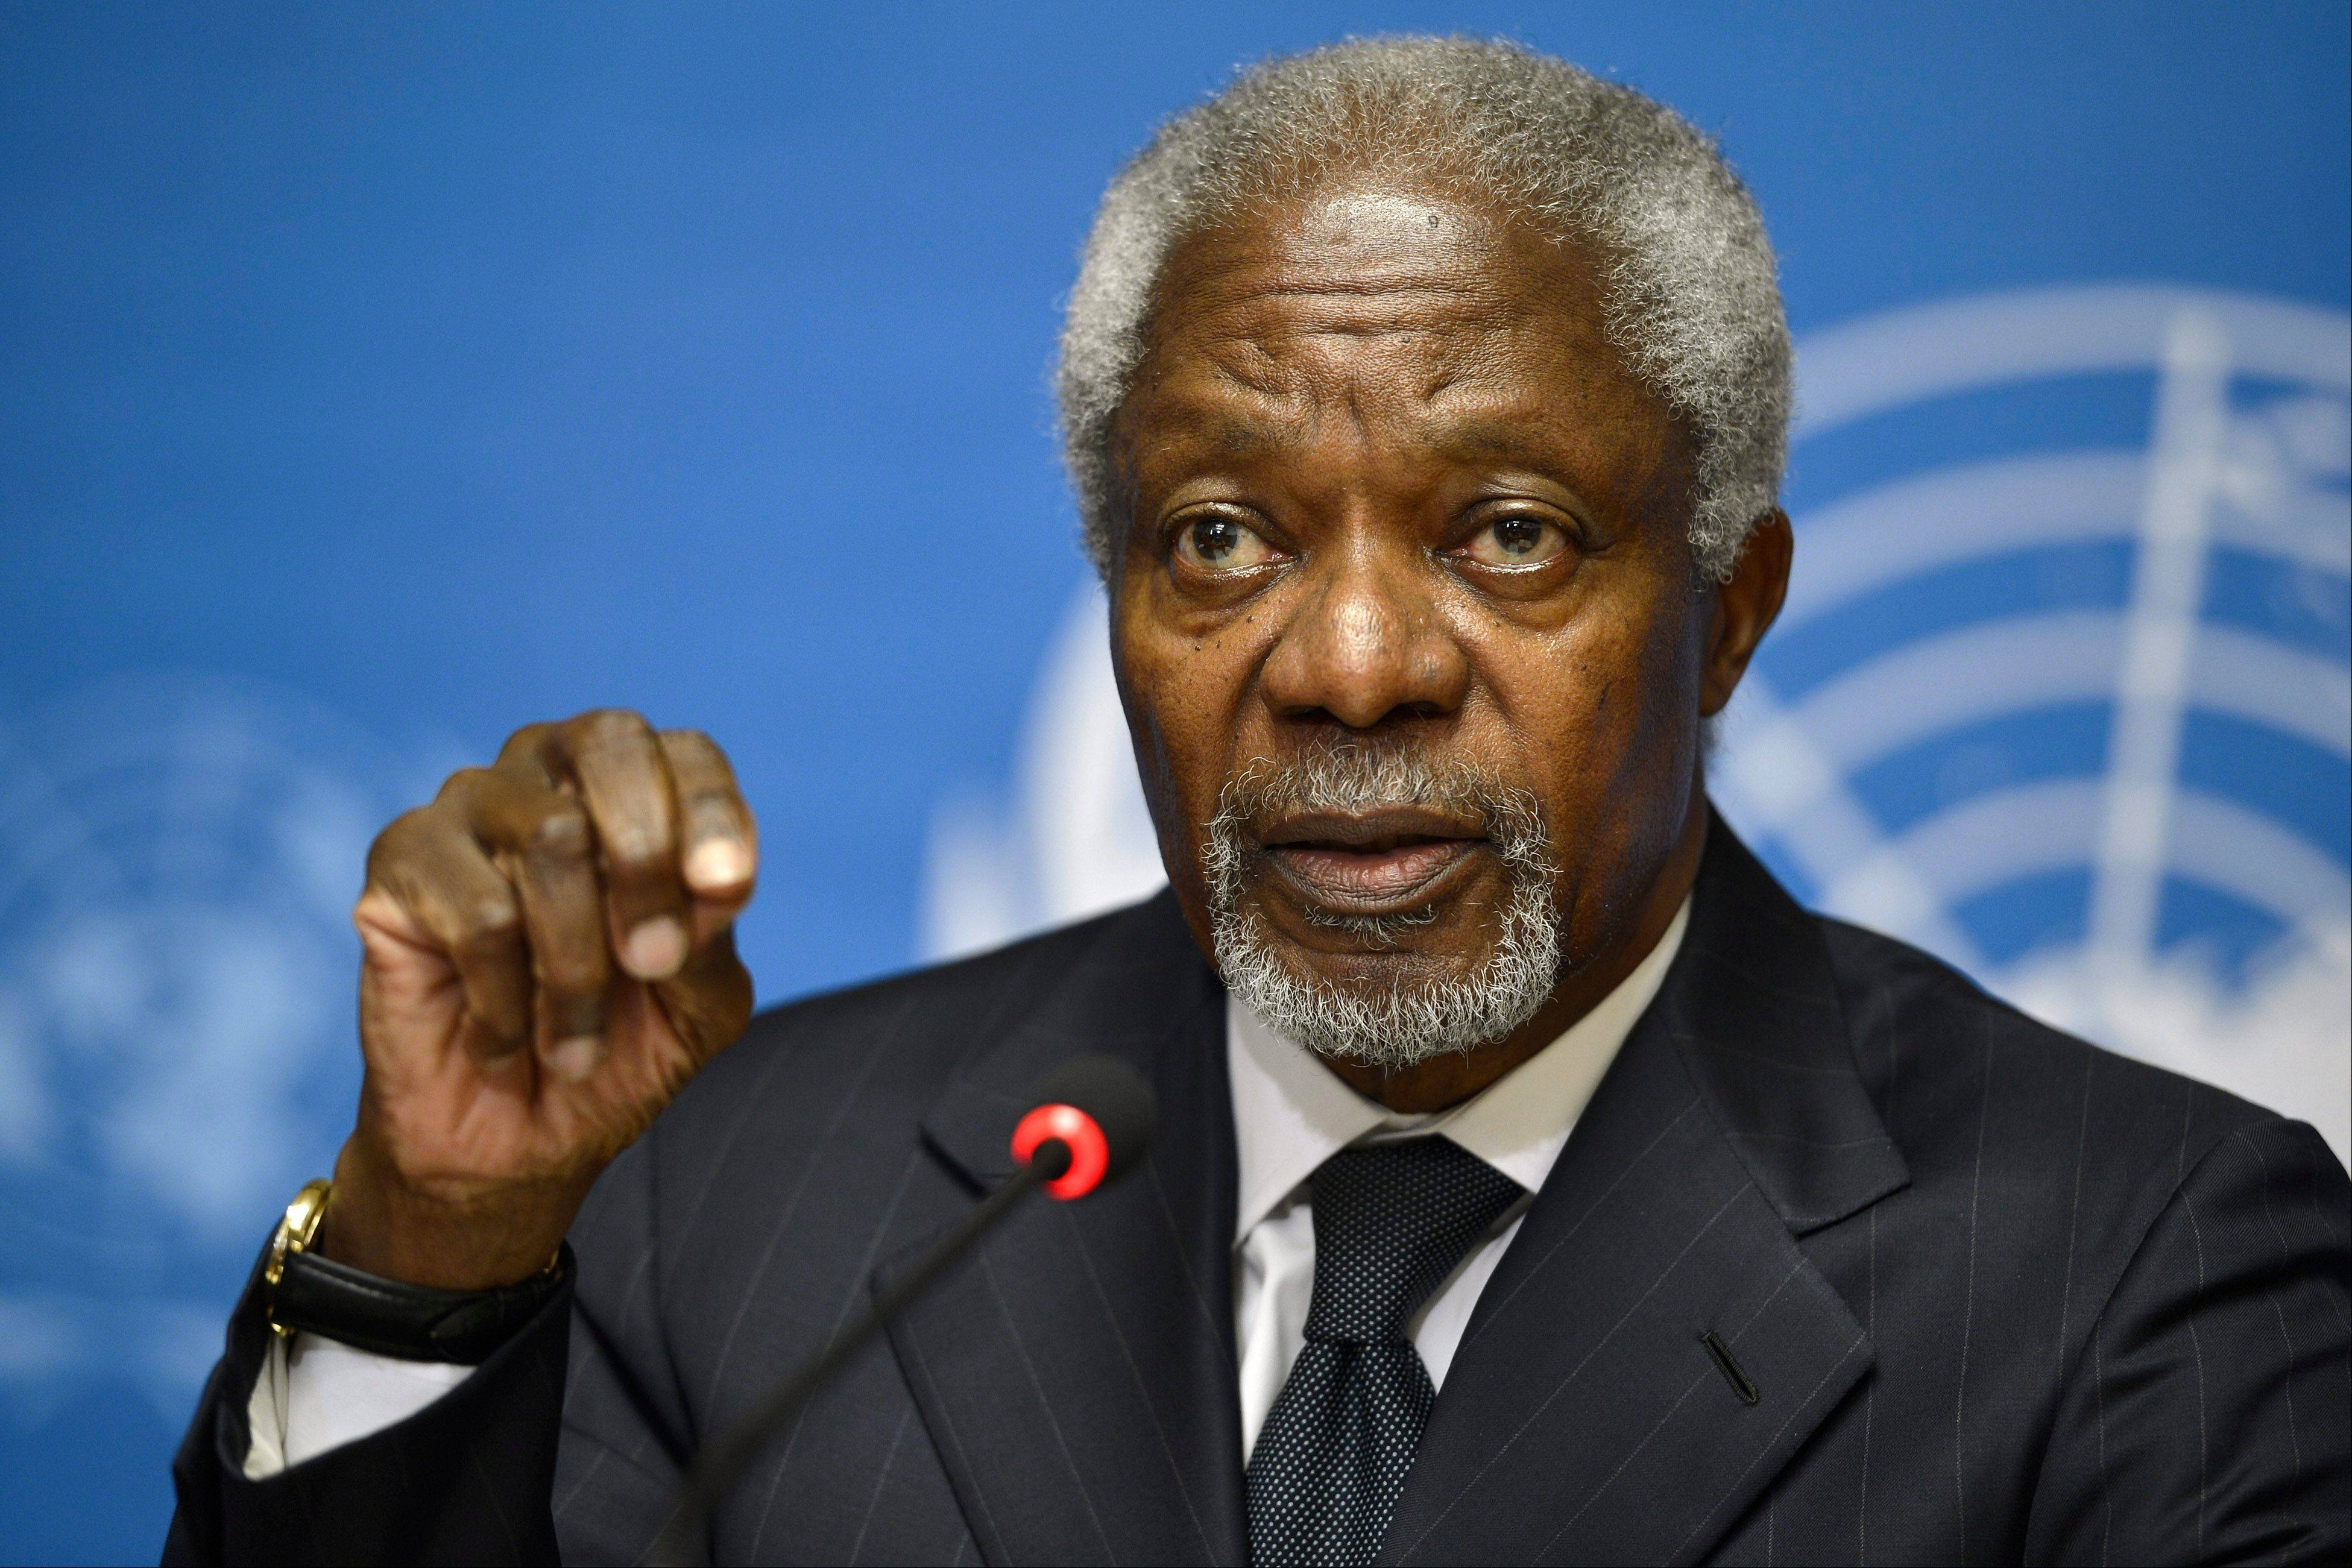 Kofi Annan, Joint Special Envoy of the United Nations and the Arab League for Syria, speaks during a press briefing, at the European headquarters of the United Nations in Geneva, Switzerland, Thursday. Annan is stepping down as U.N. Arab League mediator in the 17-month-old Syria conflict at the end of the month, U.N. chief Ban Ki-moon said in a statement on Thursday.